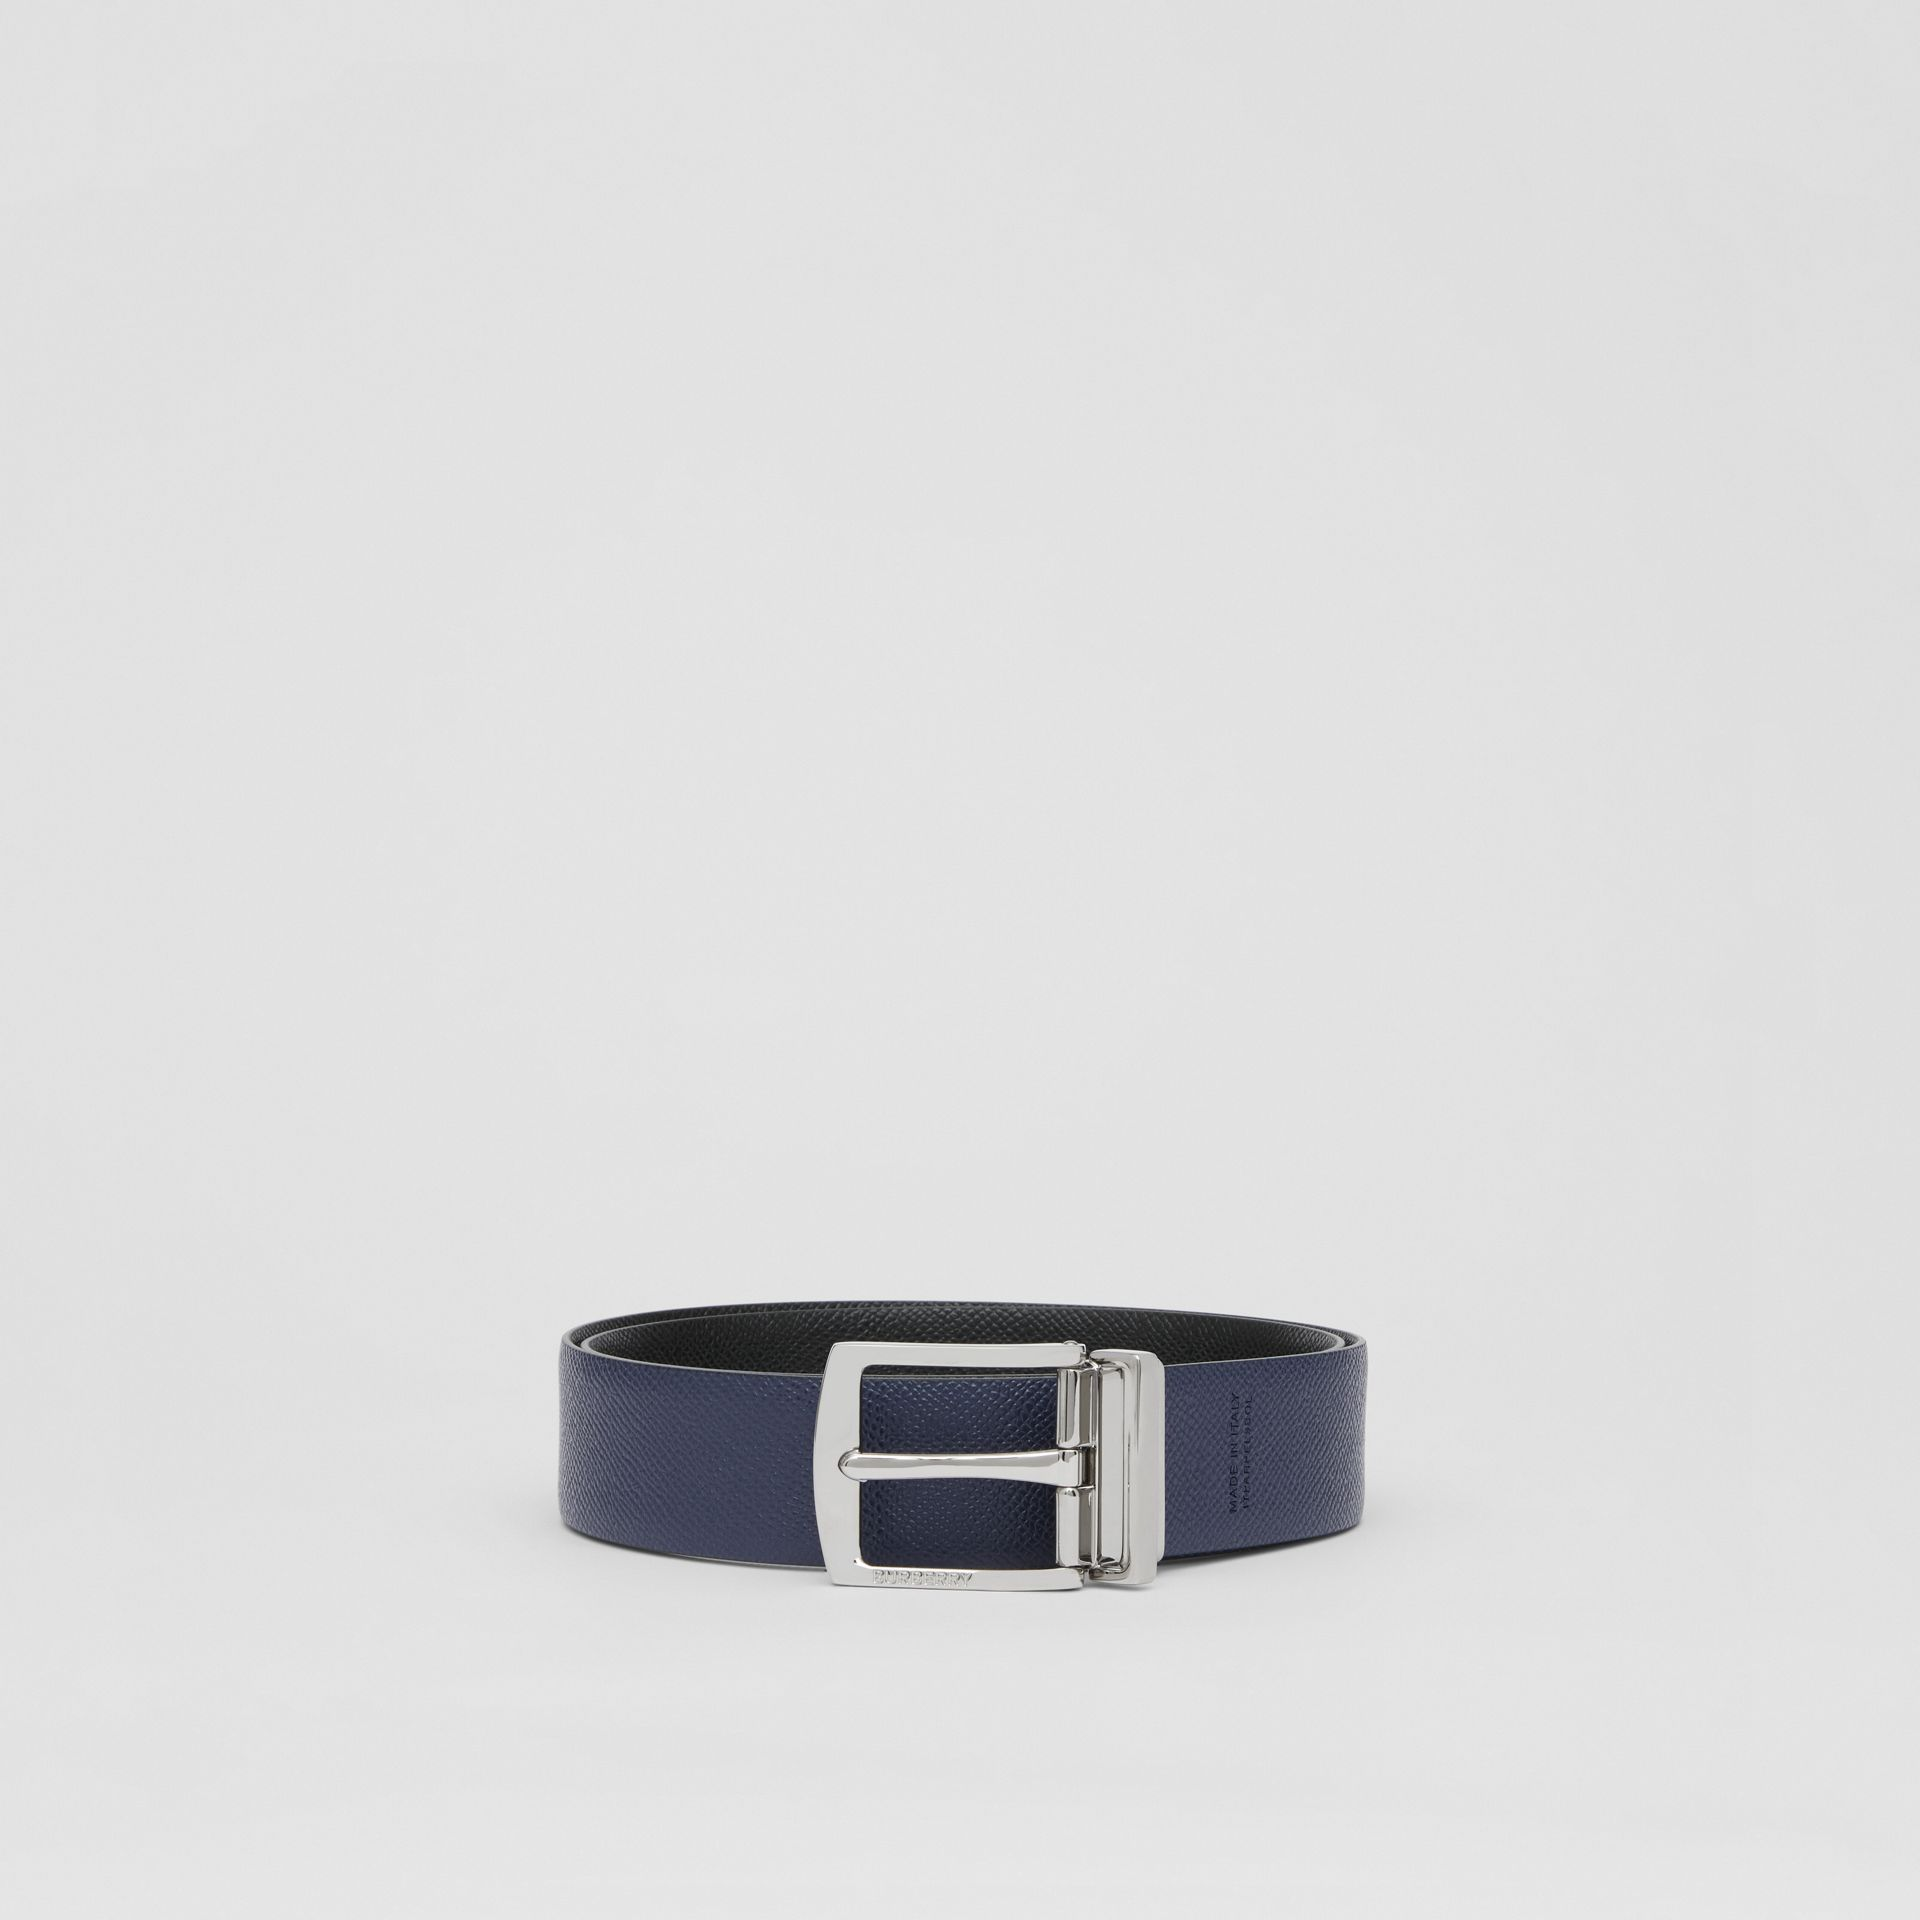 Reversible Grainy Leather Belt in Black/navy - Men | Burberry - gallery image 5